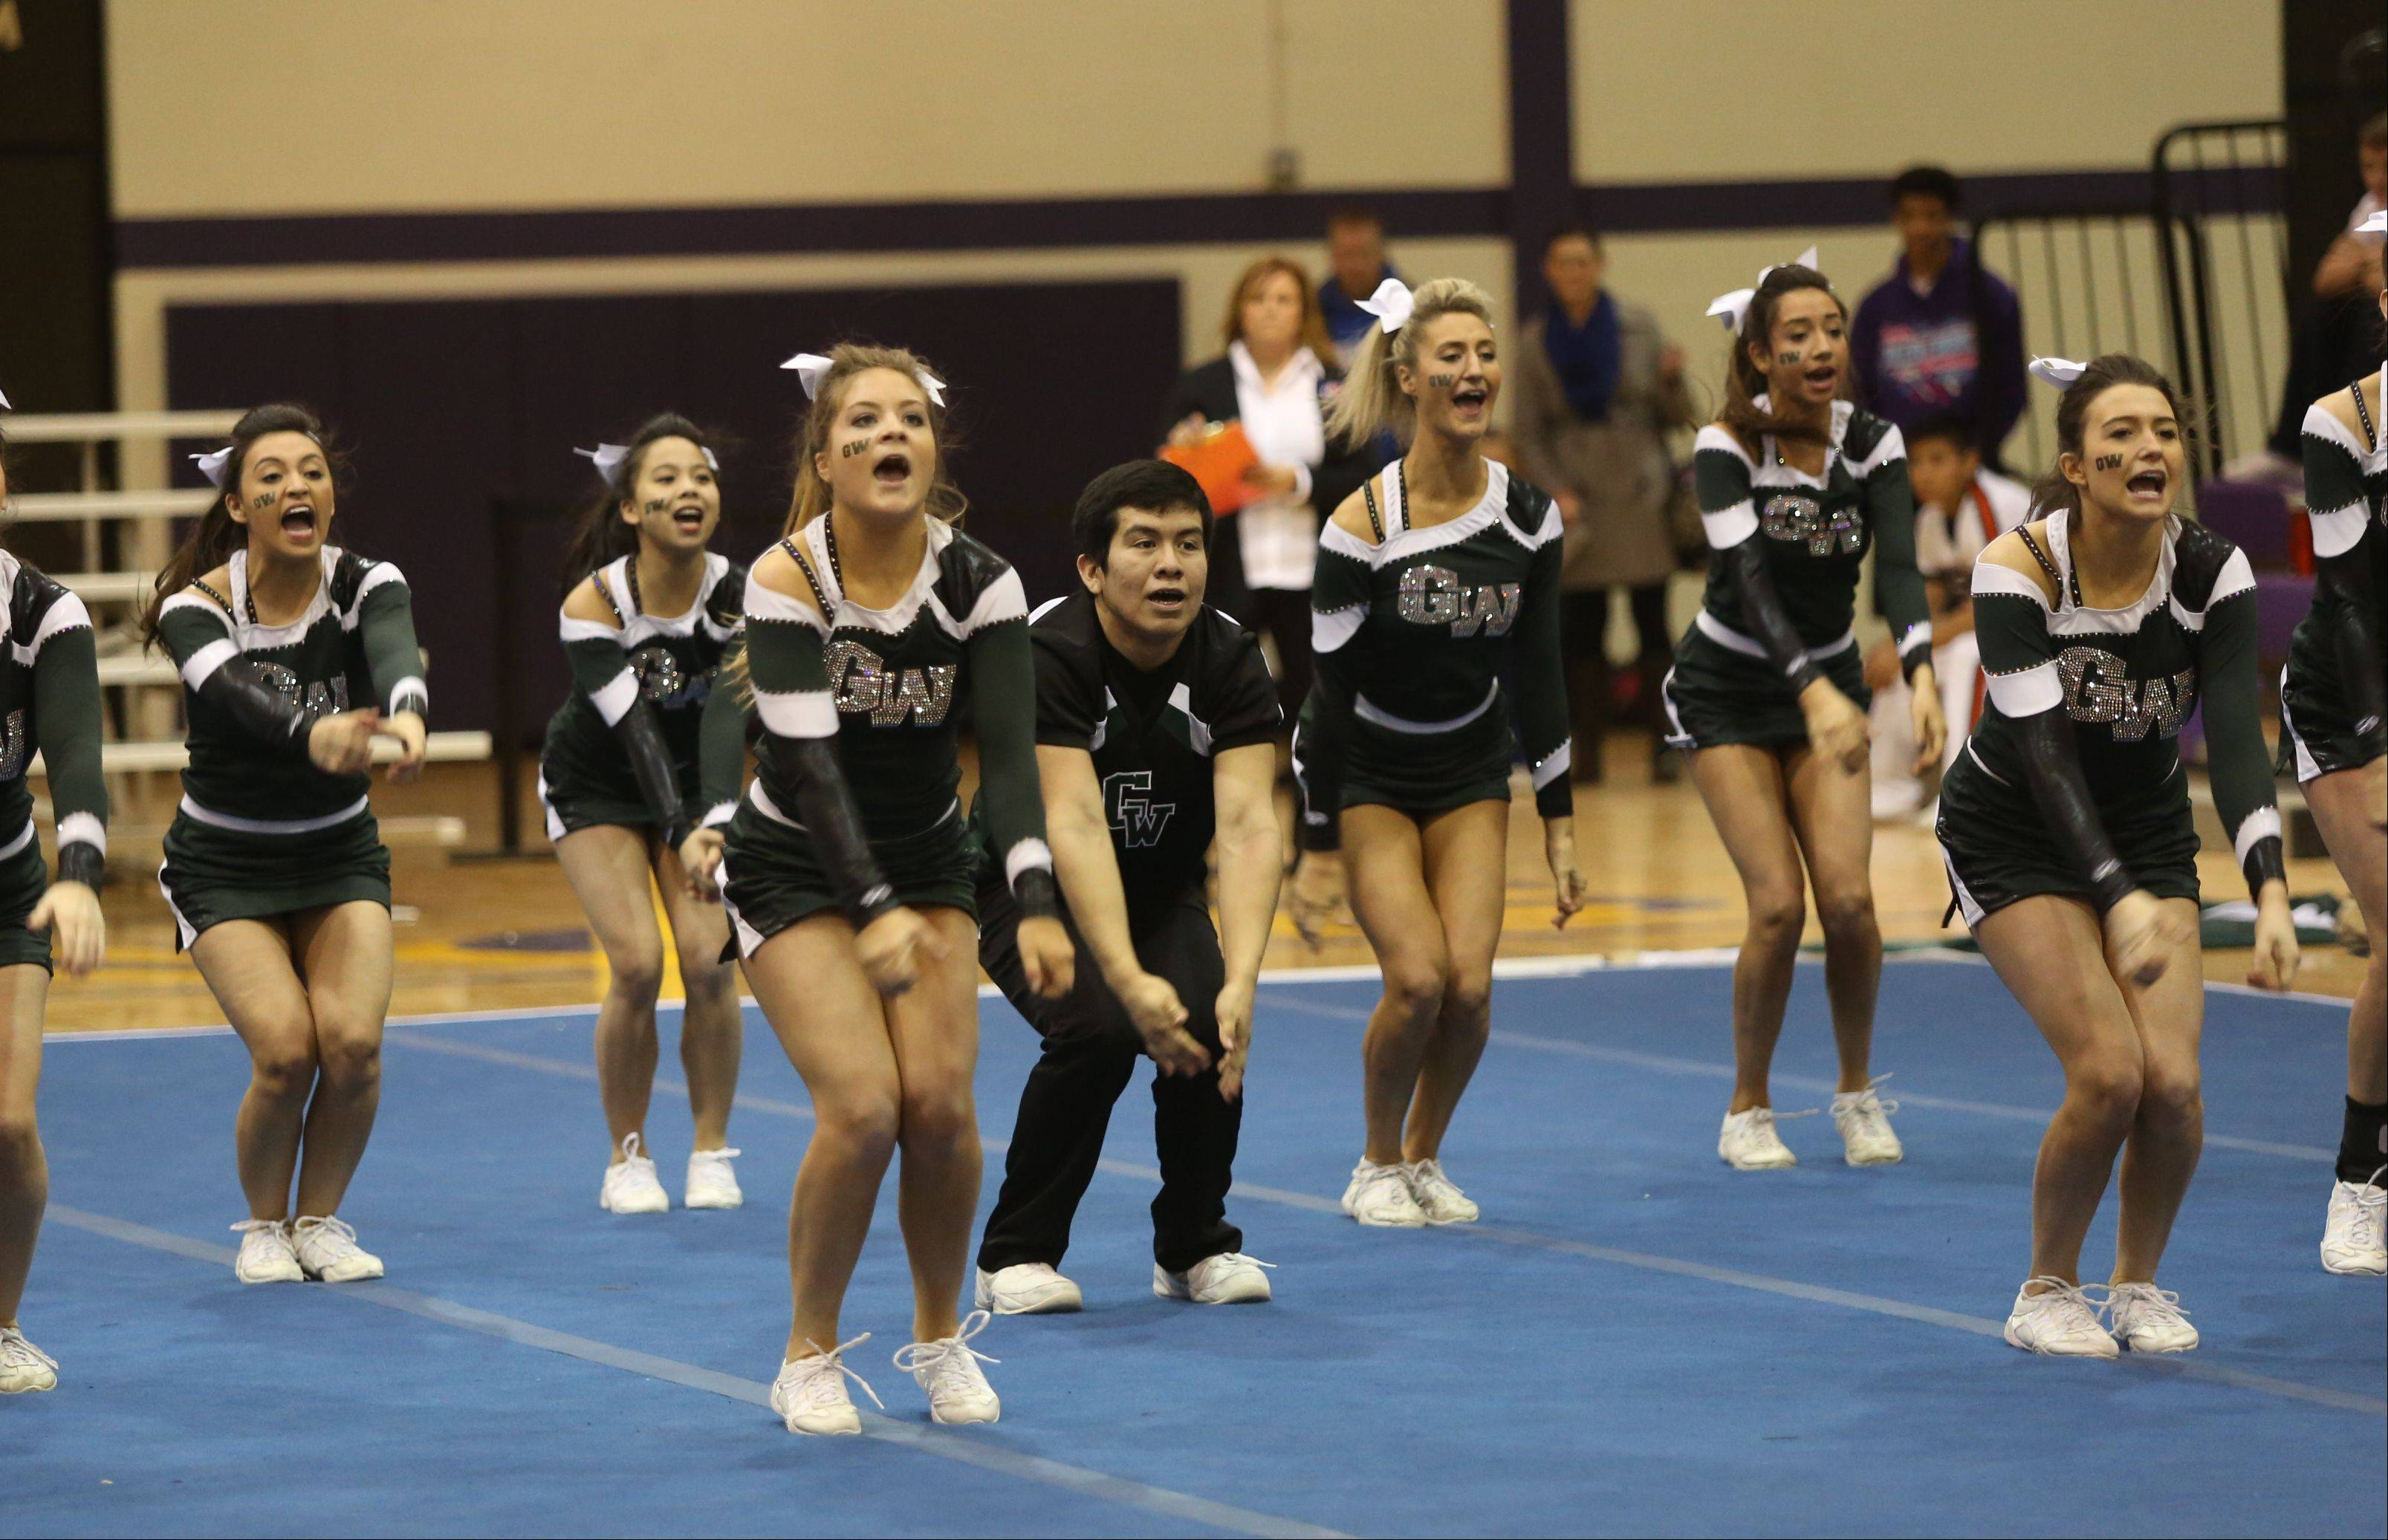 Glenbard West High School competes in the Coed Team category during the IHSA Cheerleading Sectional Sunday hosted by Rolling Meadows High School.